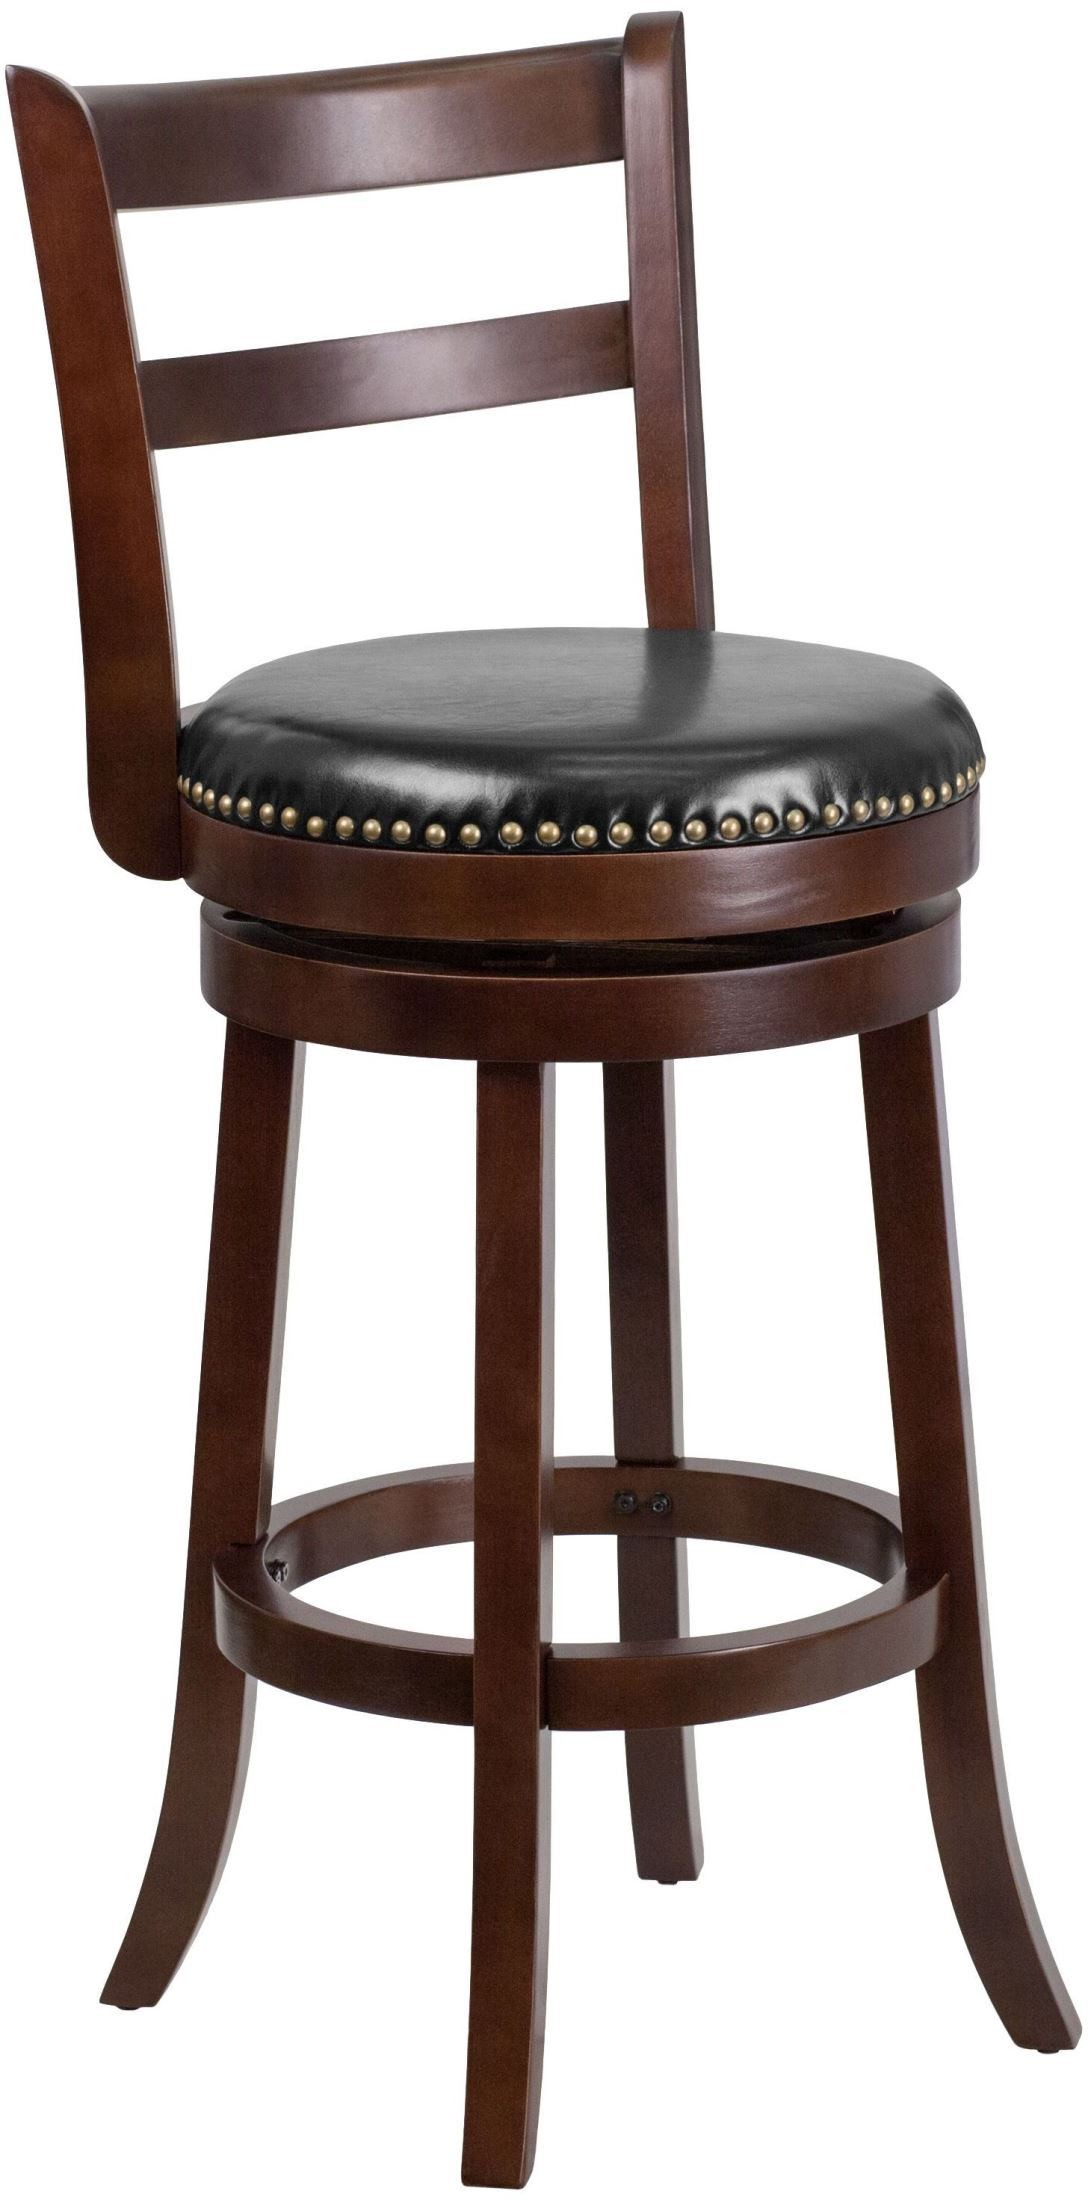 30inch Black Swivel Cappuccino Bar Stool From Renegade